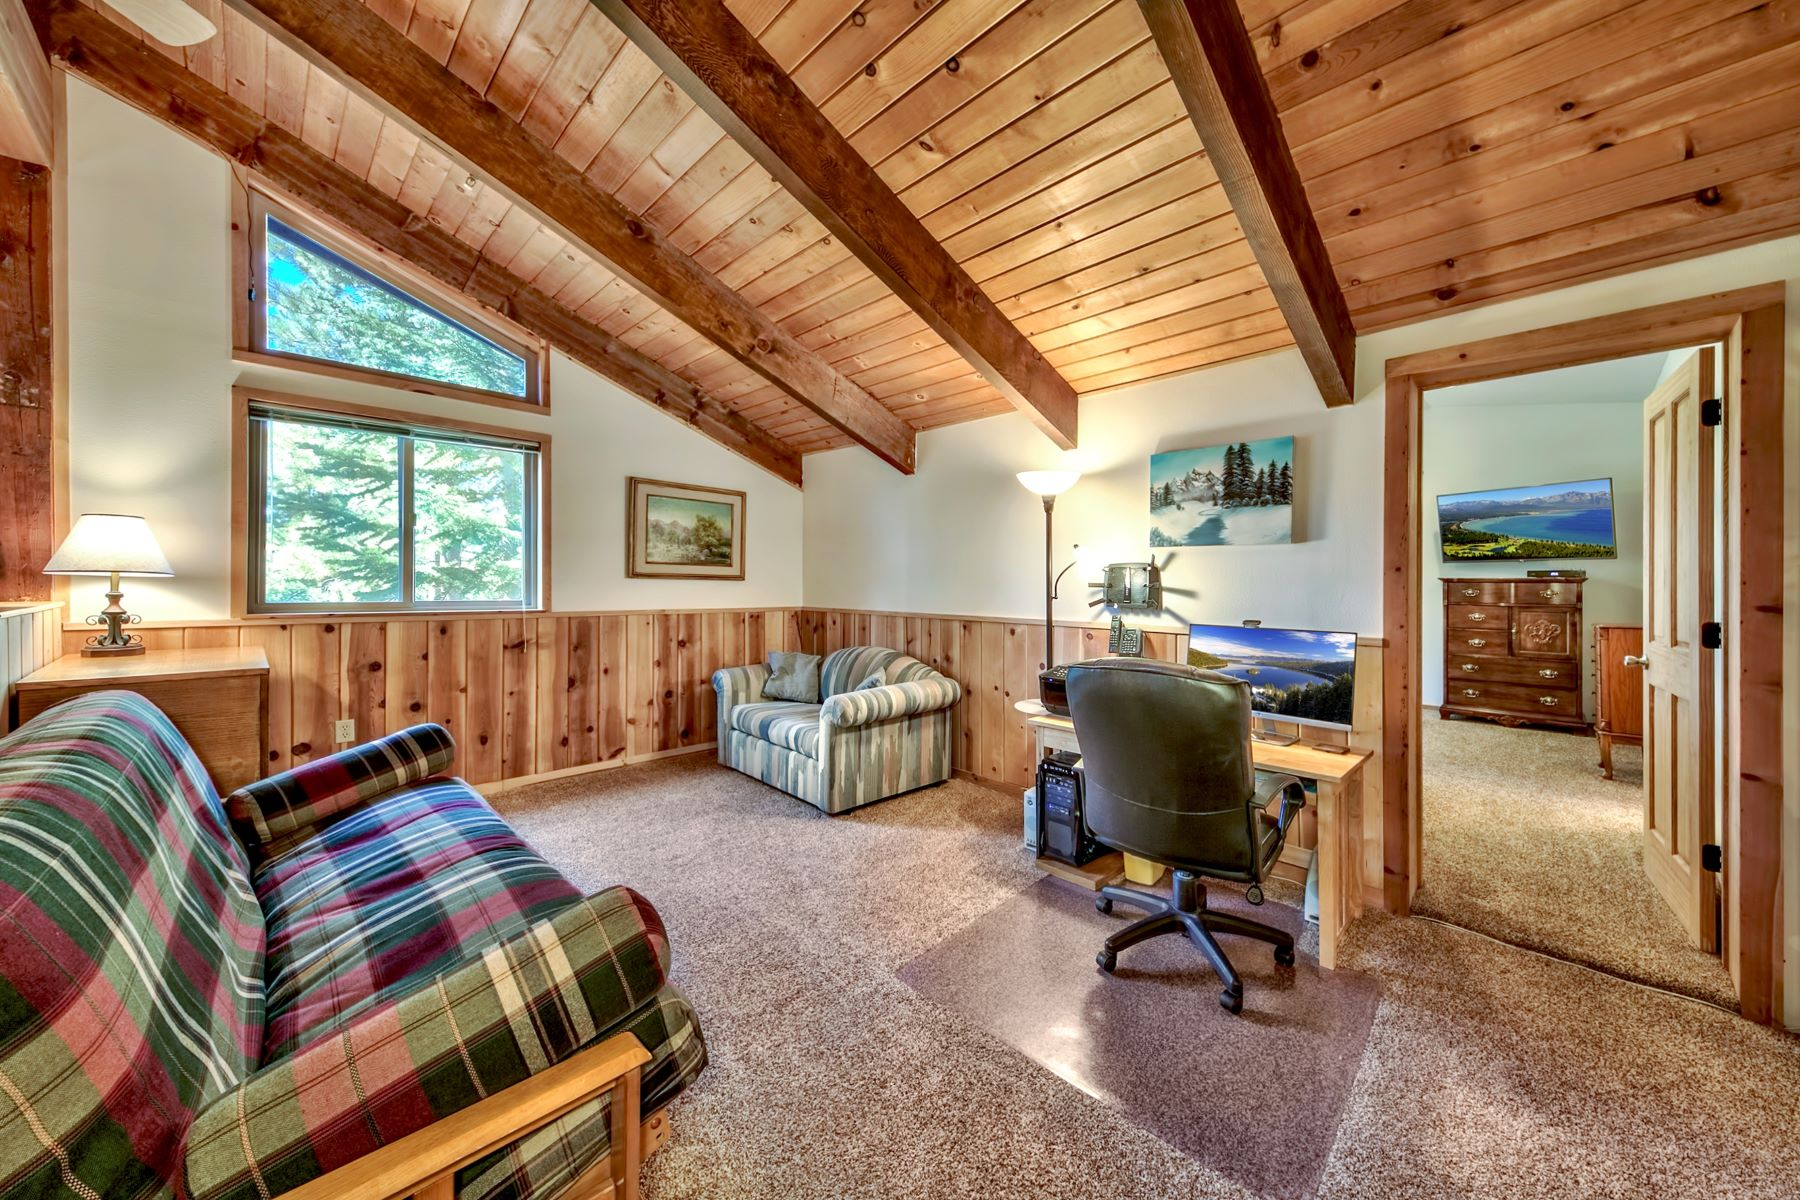 Additional photo for property listing at 1652 Hekpa Drive, South Lake Tahoe, CA 96150 1652 Hekpa Drive South Lake Tahoe, California 91650 United States